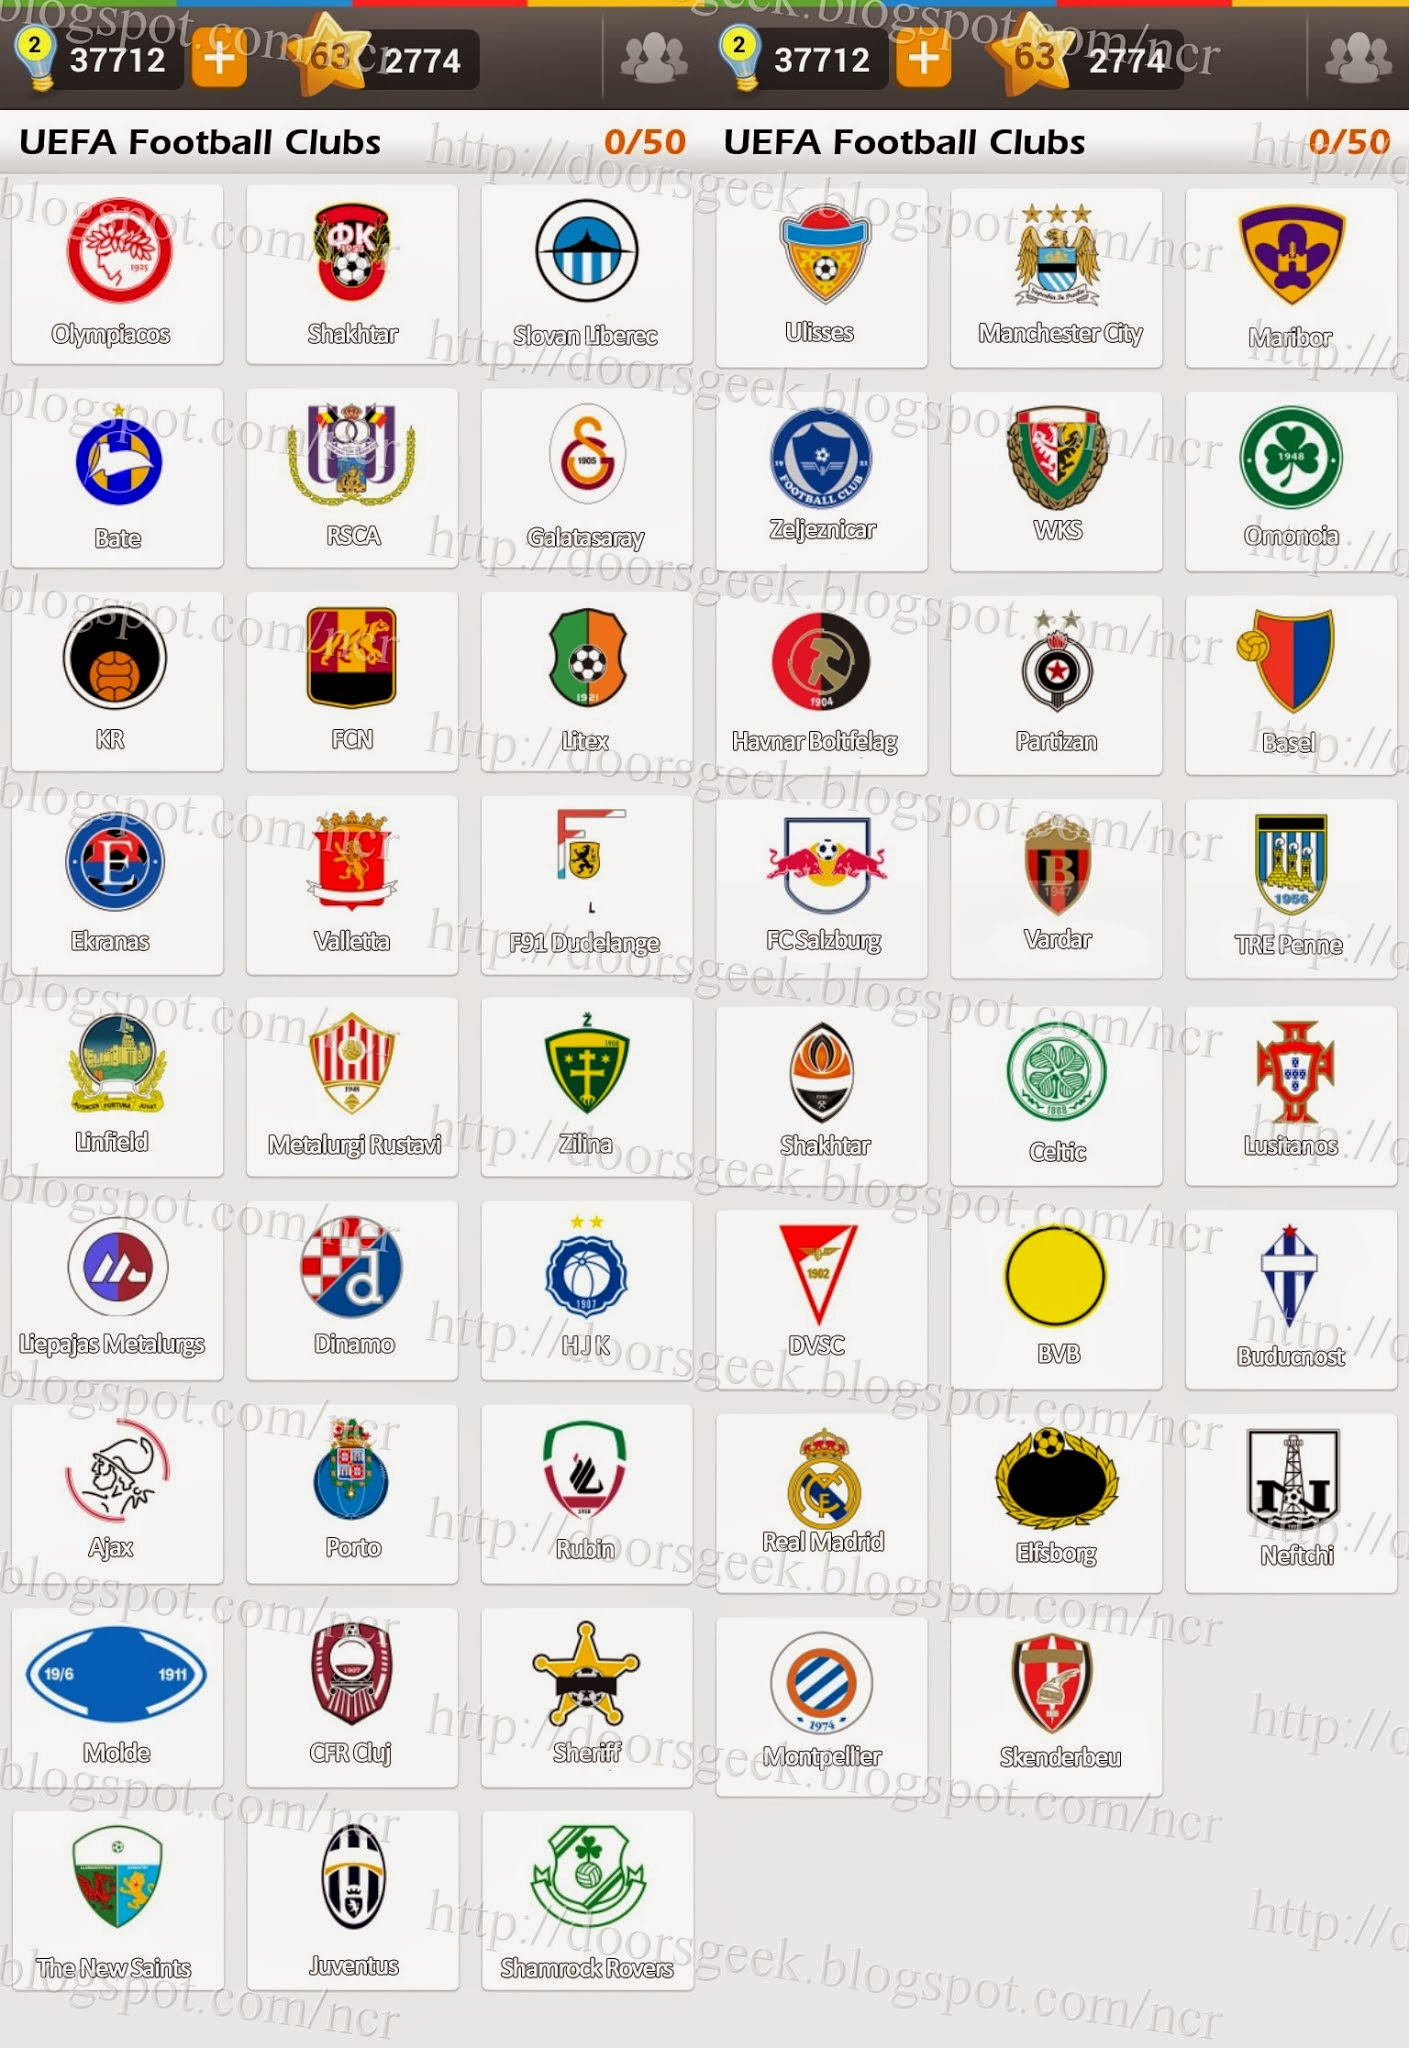 Bien-aimé Logo Game: Guess the Brand [Bonus] UEFA Football Clubs ~ Doors Geek BU33